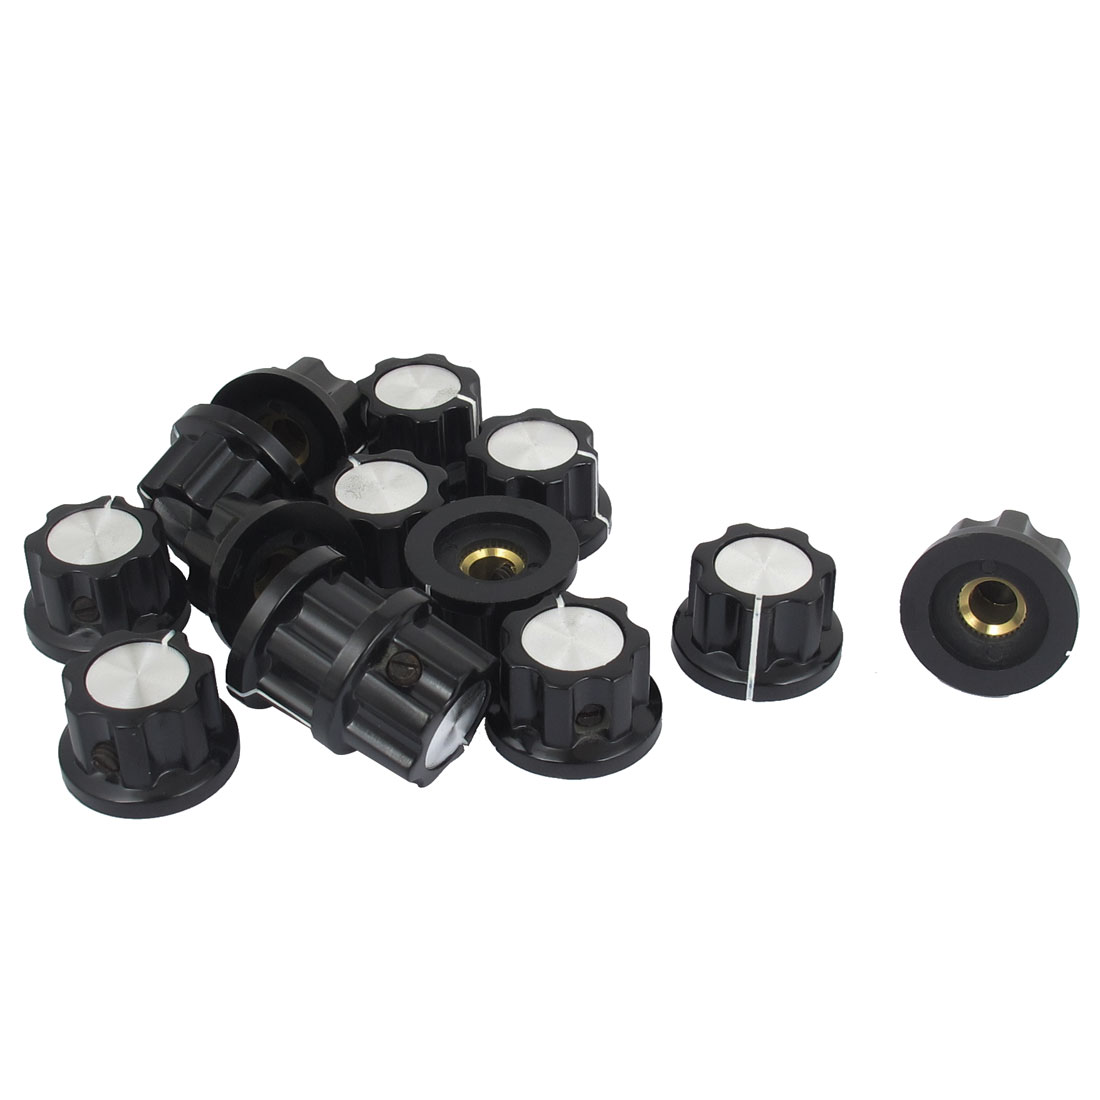 14pcs Plastic Shell Round Potentiometer Knobs Cap Cover 6mm Dia. Hole Black